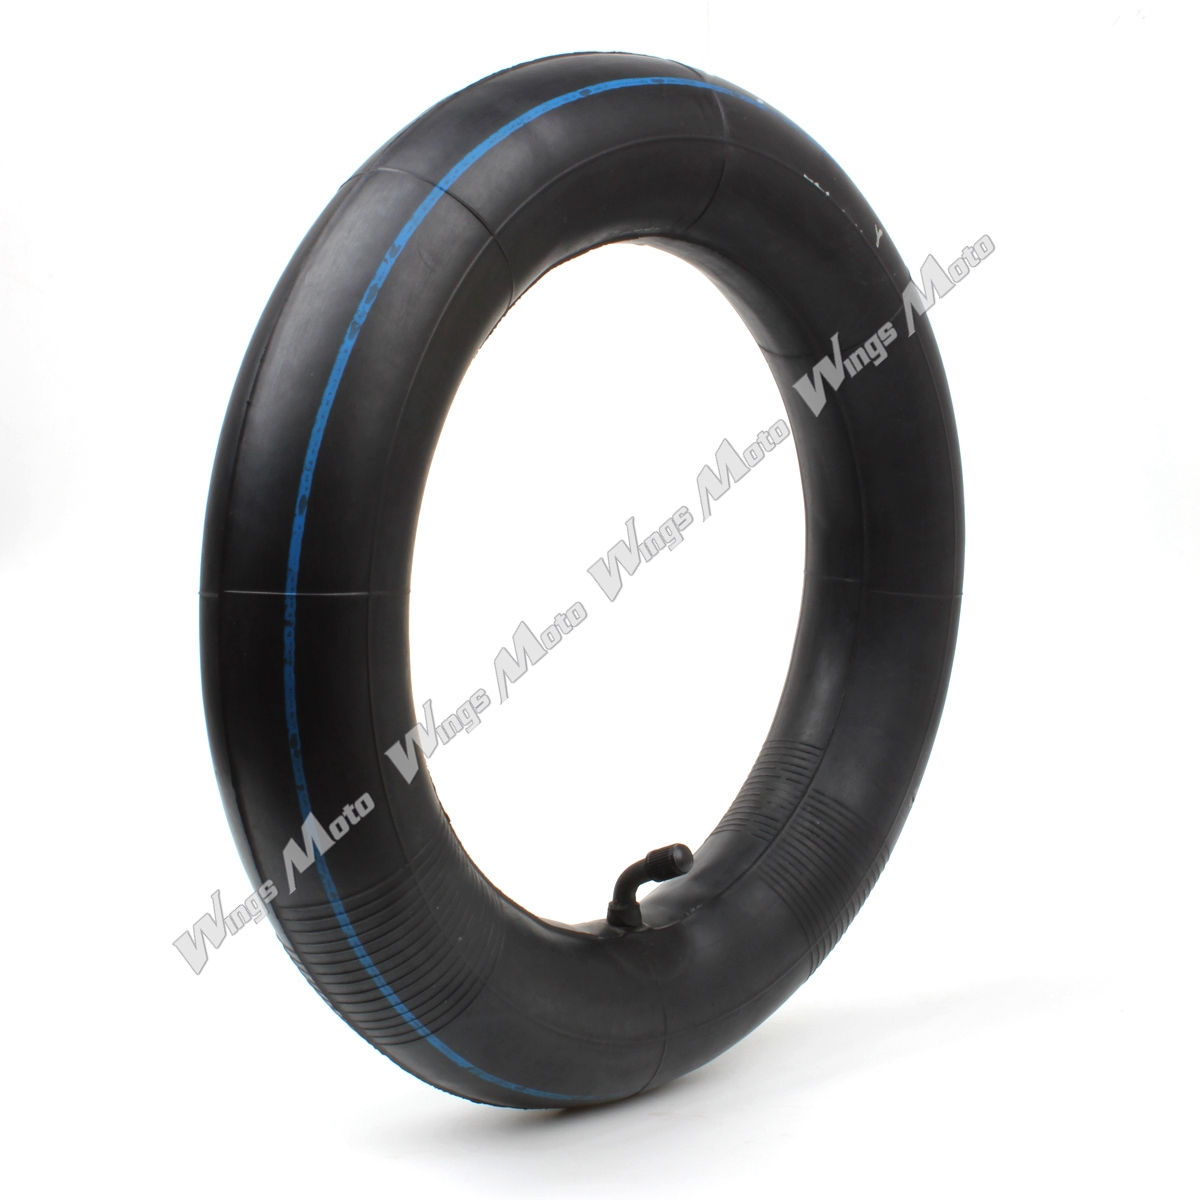 """ 3.25/3.00-8 Inner Tube with TR-87 Angled Stem for 8 Inch Wheelbarrow Scooters Mini Chopper Tire Go Kart ATV"""